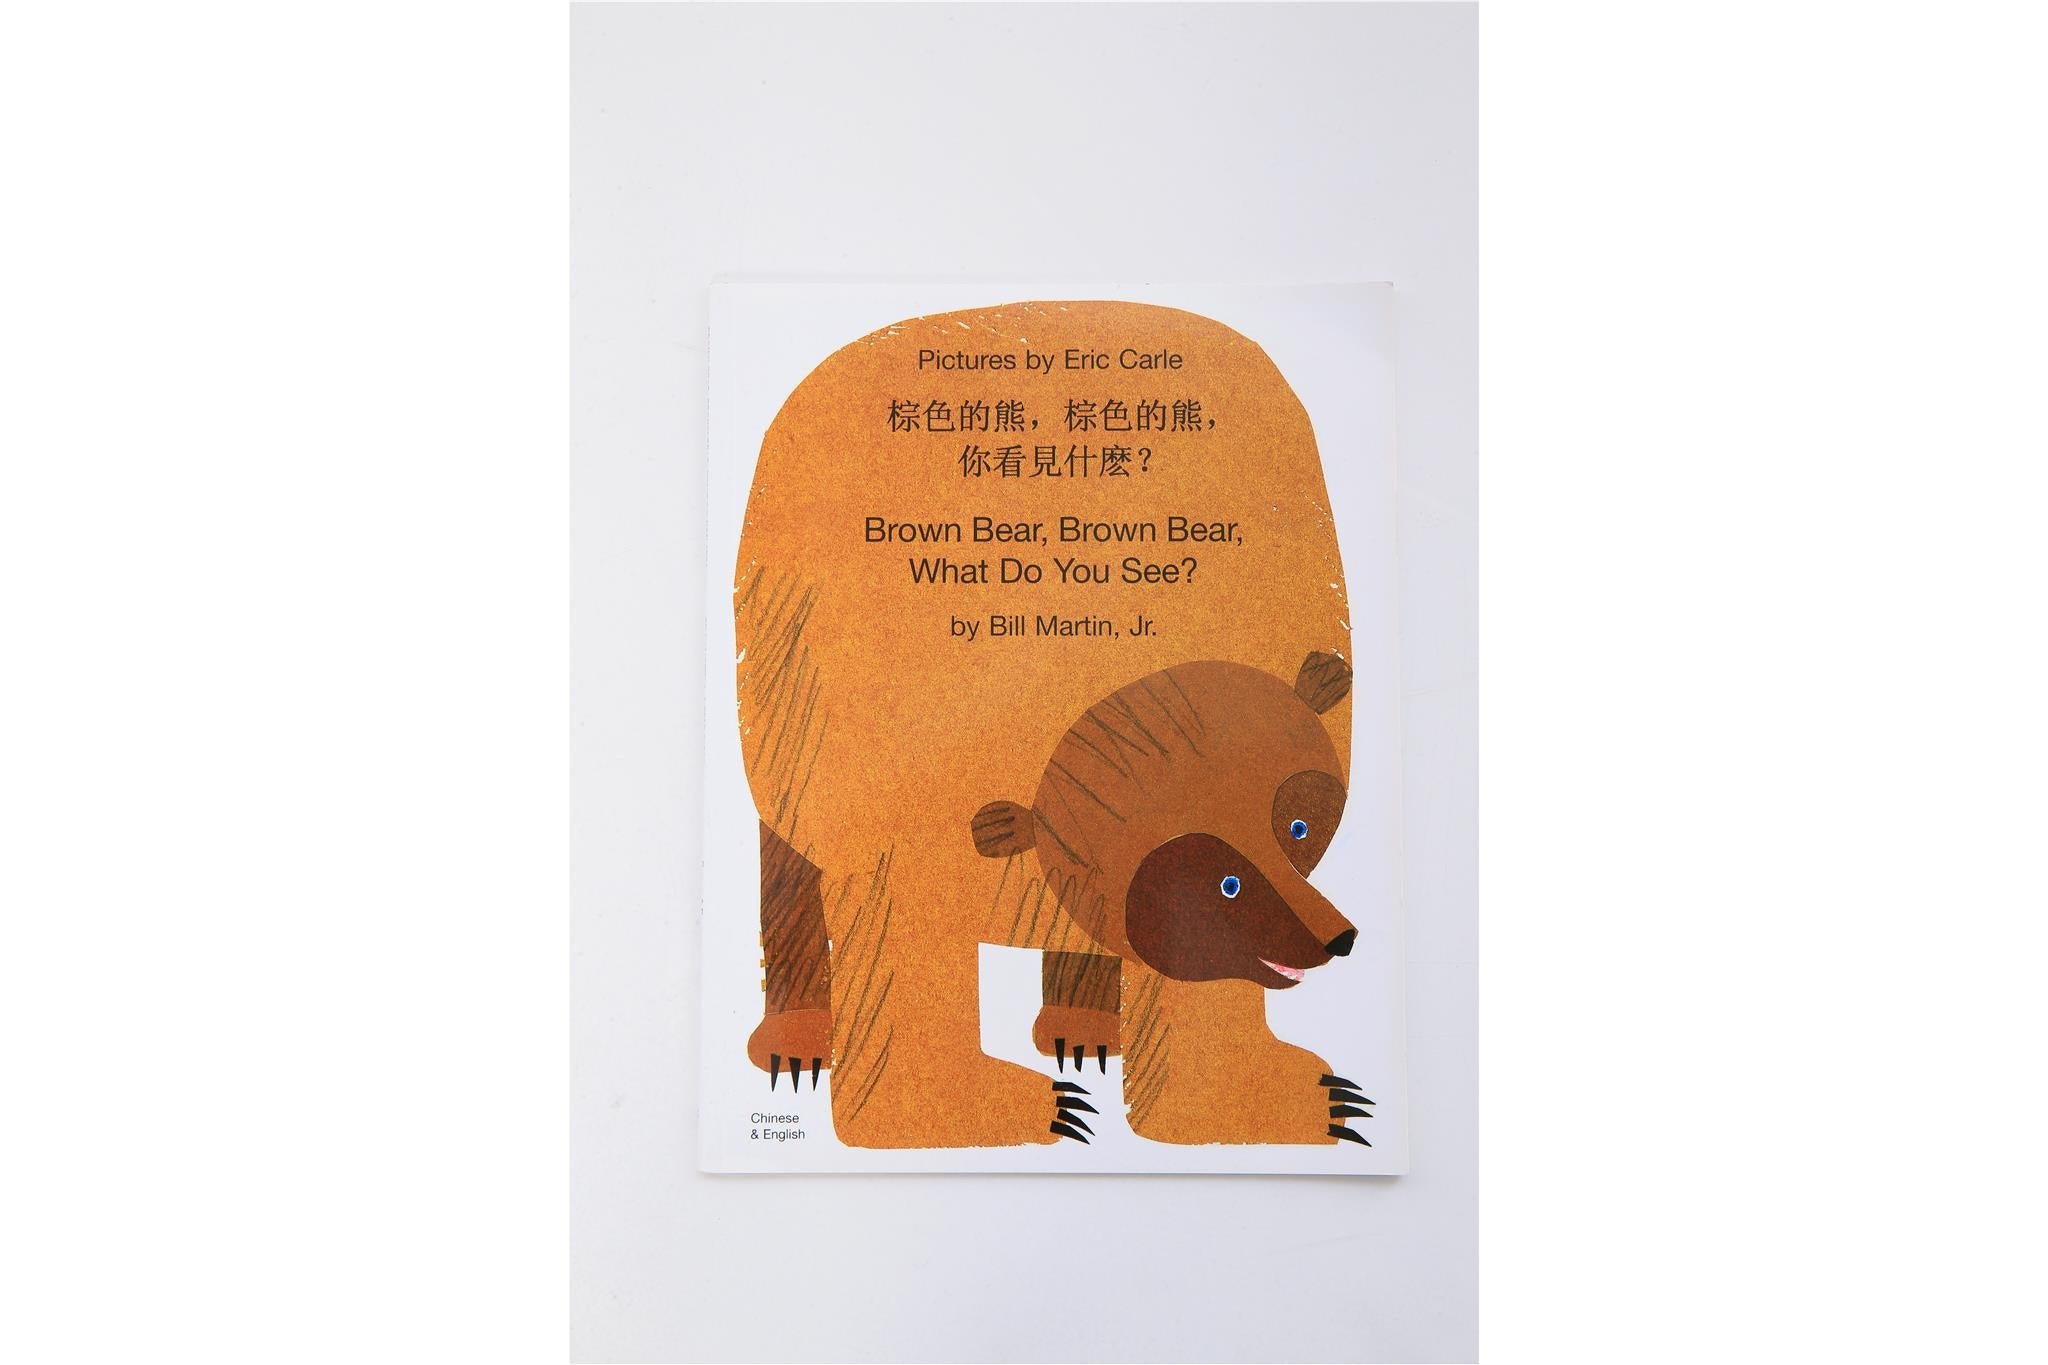 Bilingual book (English and Mandarin Chinese): Brown Bear, Brown Bear, What Do You See?